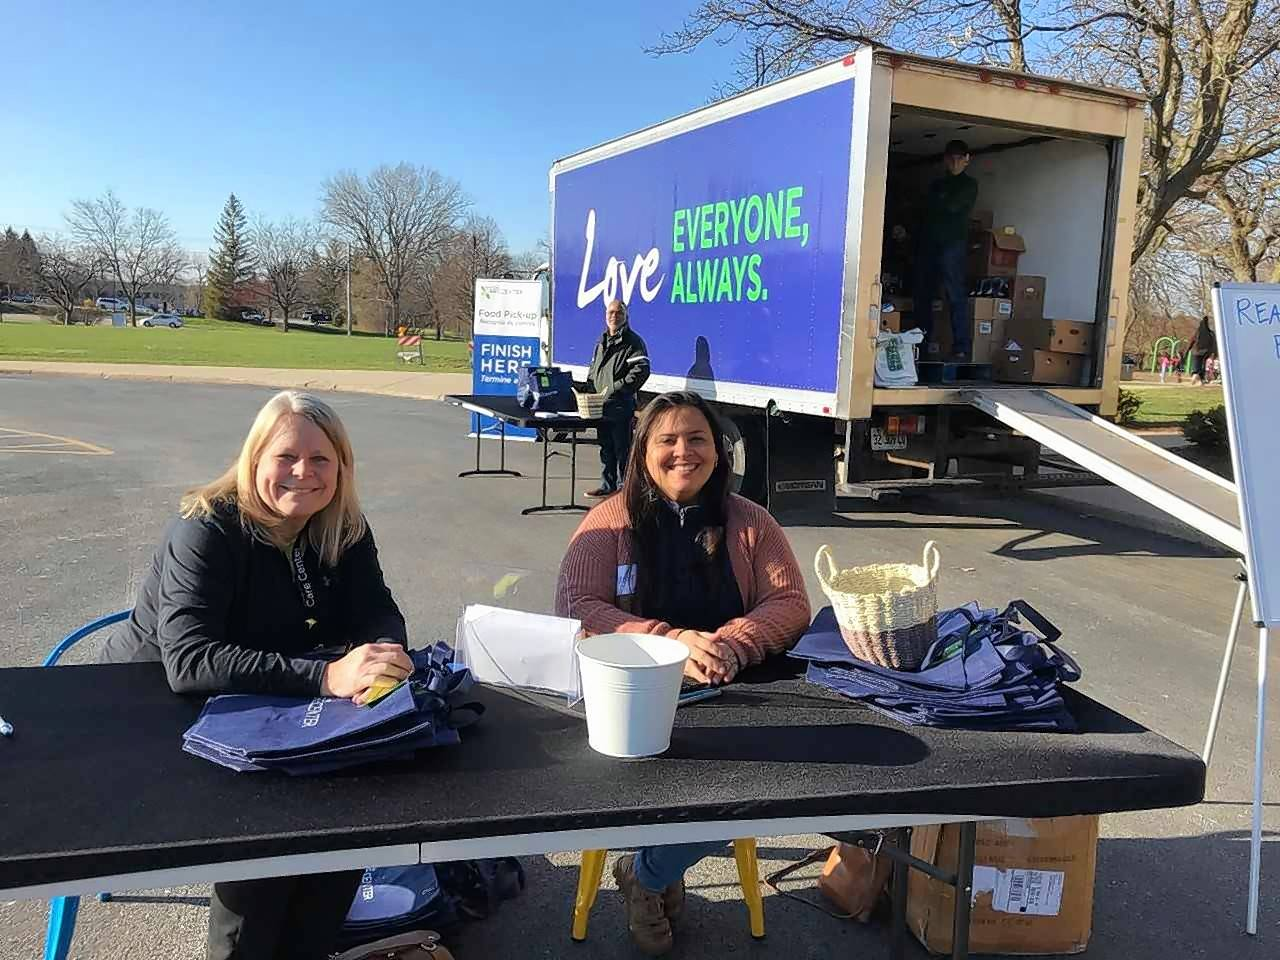 Willow Creek Care Center members Nancy Hatcher and Nancy Garcia wait to meet families at the mobile food pantry.